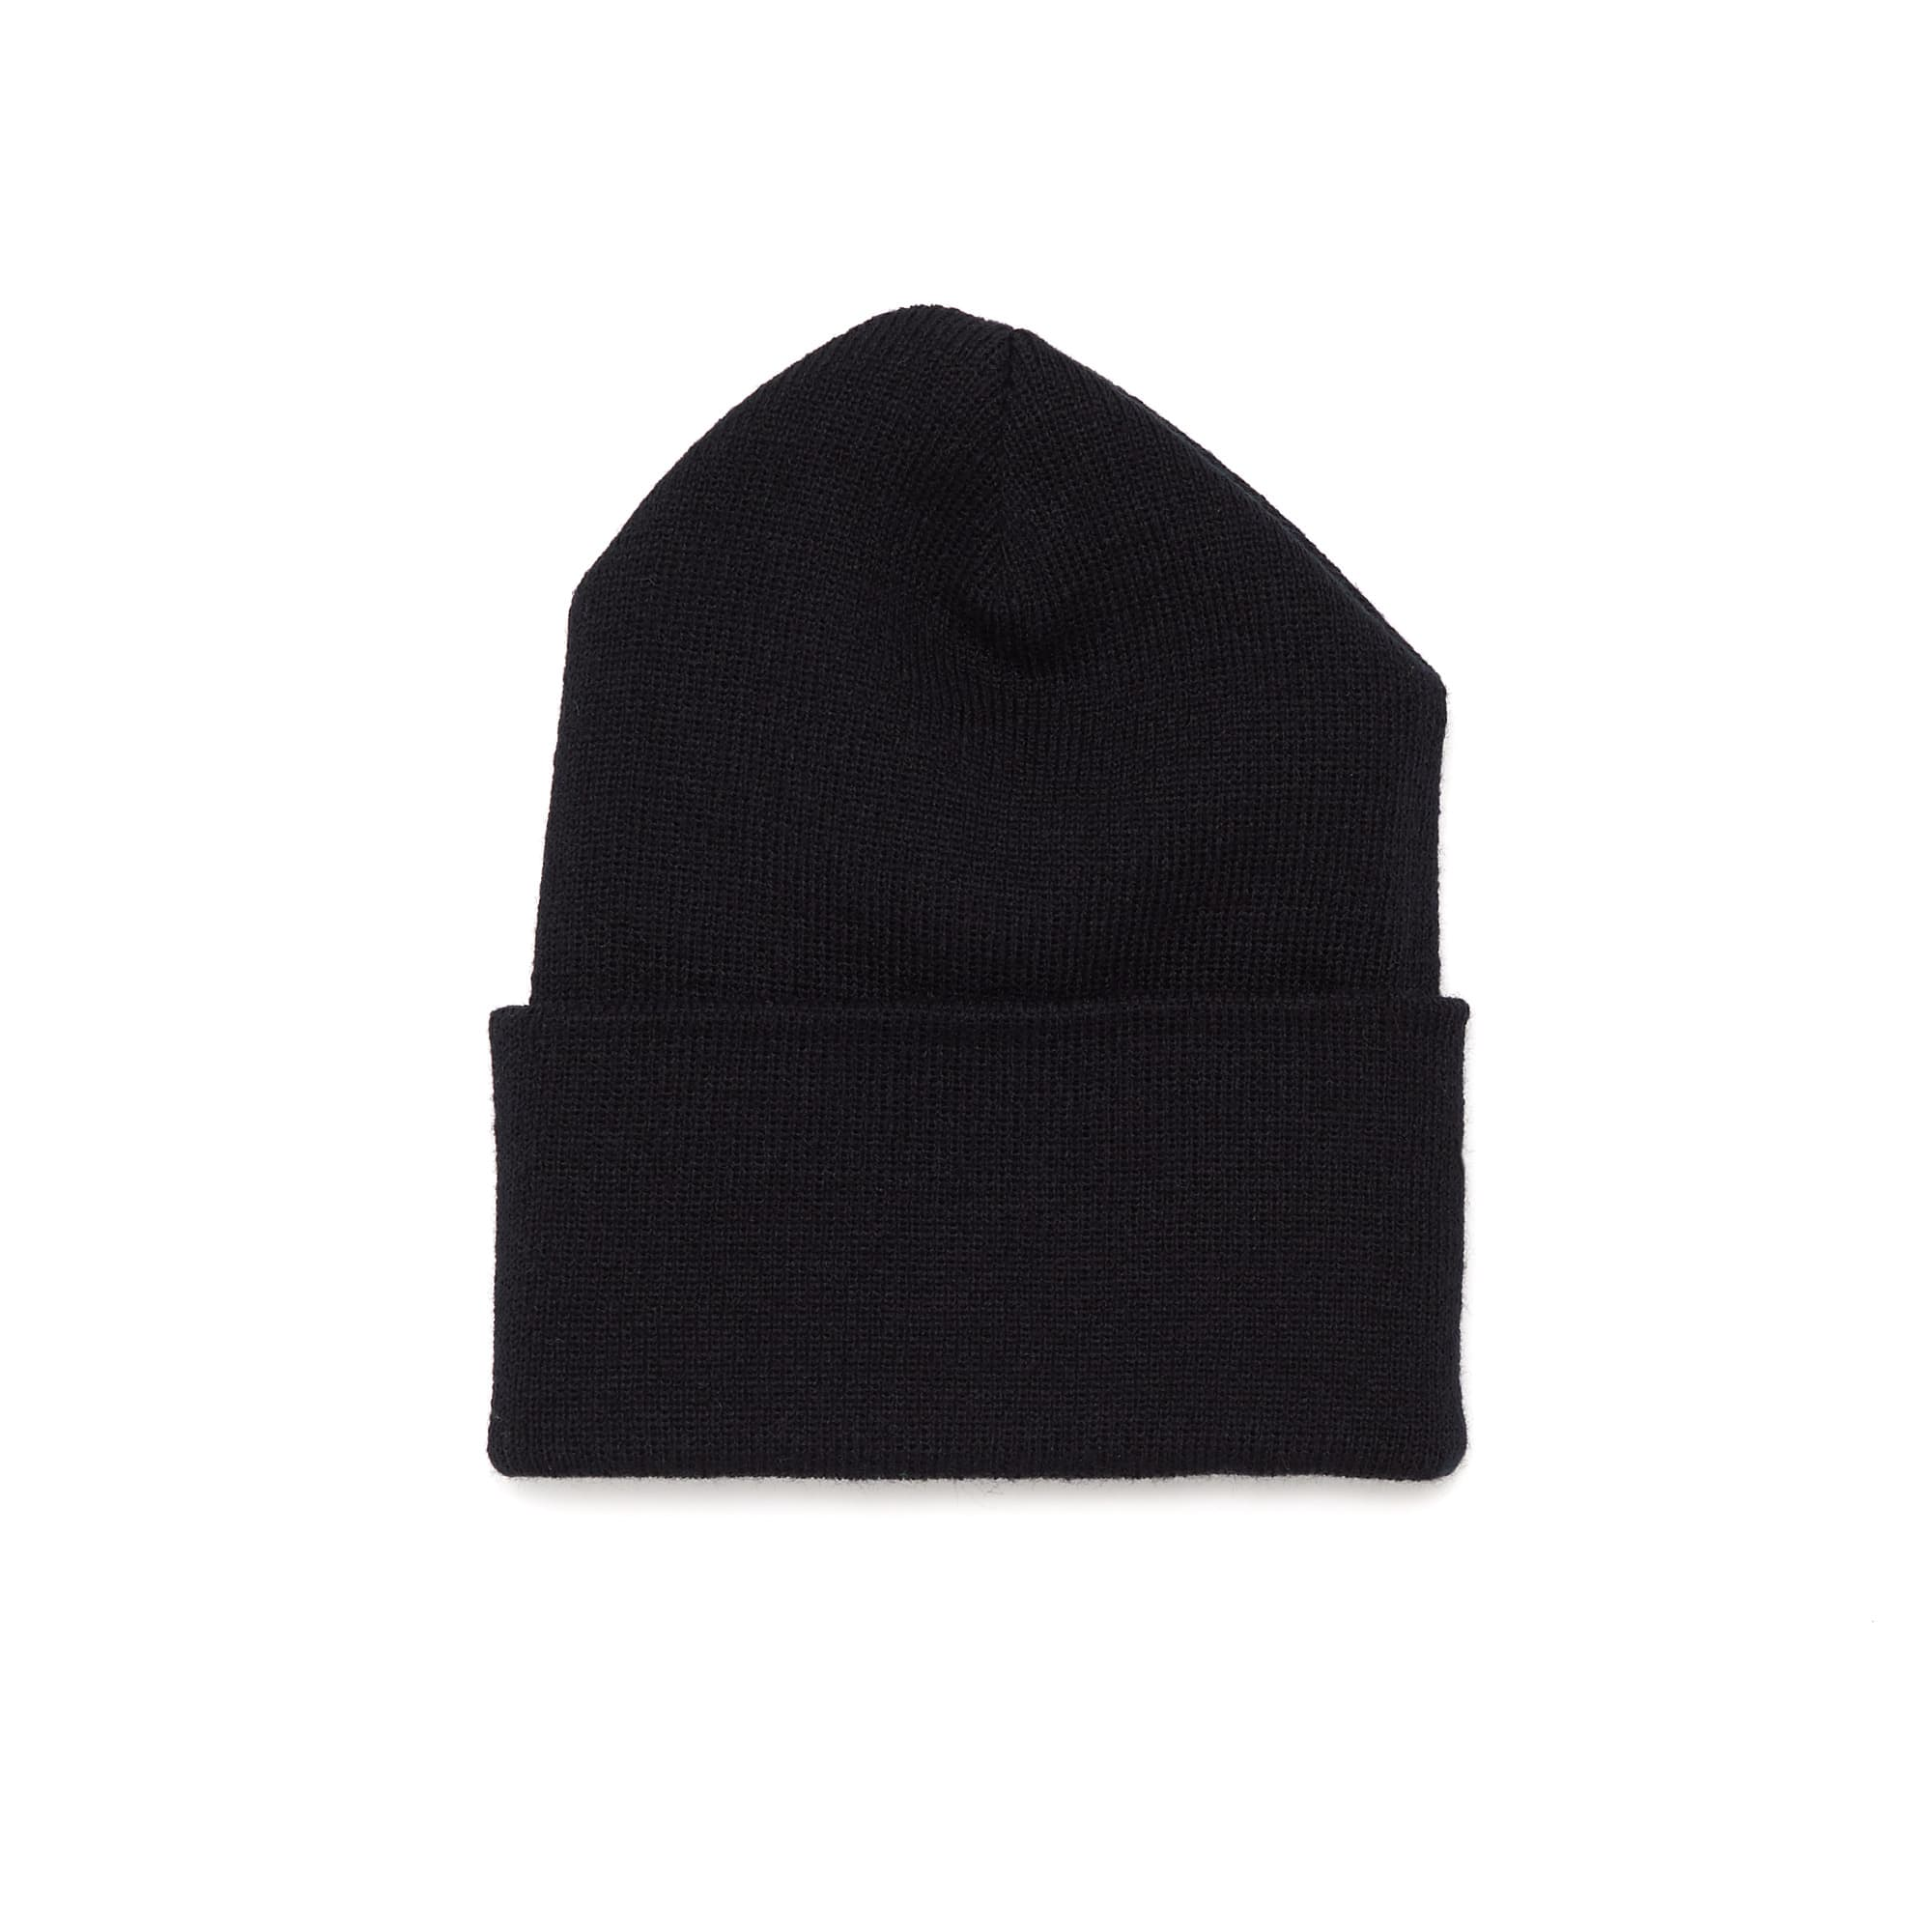 Corridor Digital Cuff Beanie - Black